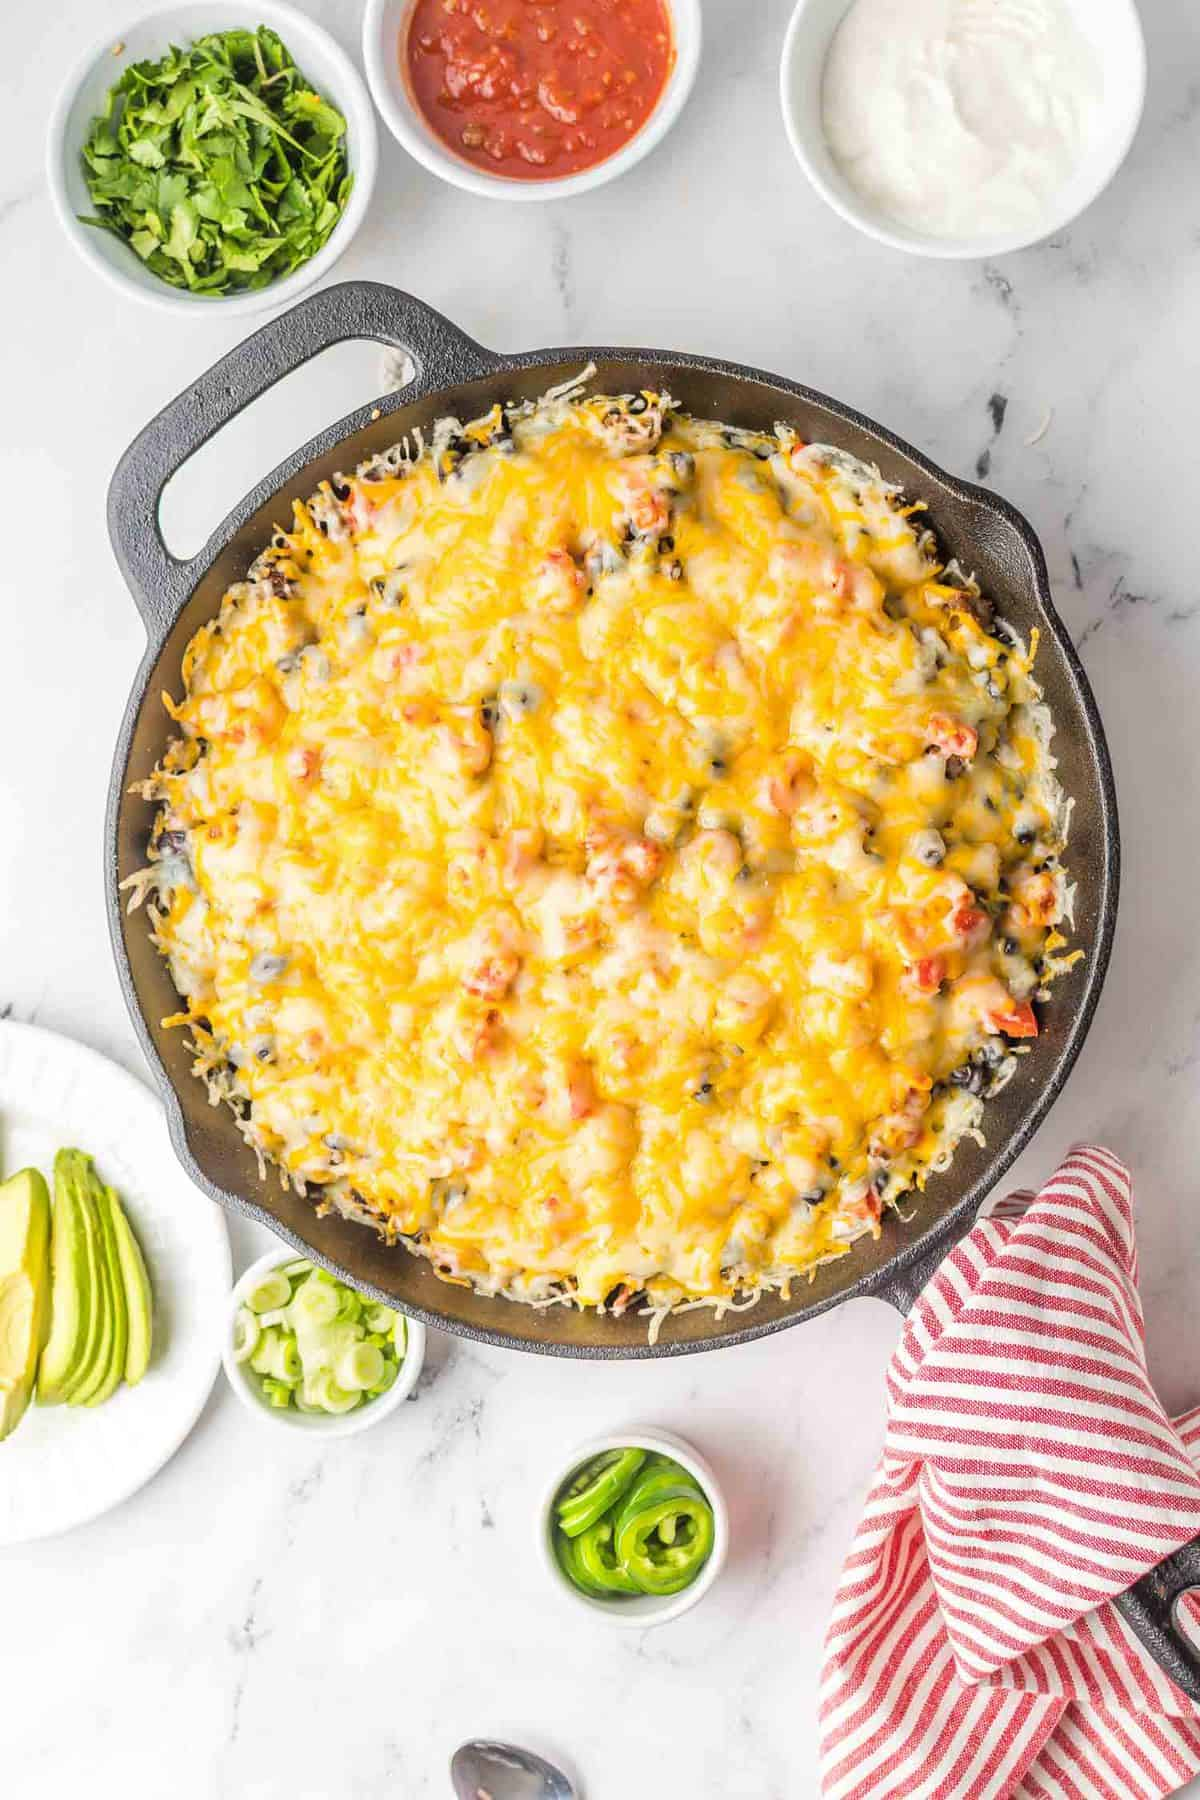 Cheese melted on a pan of nachos.